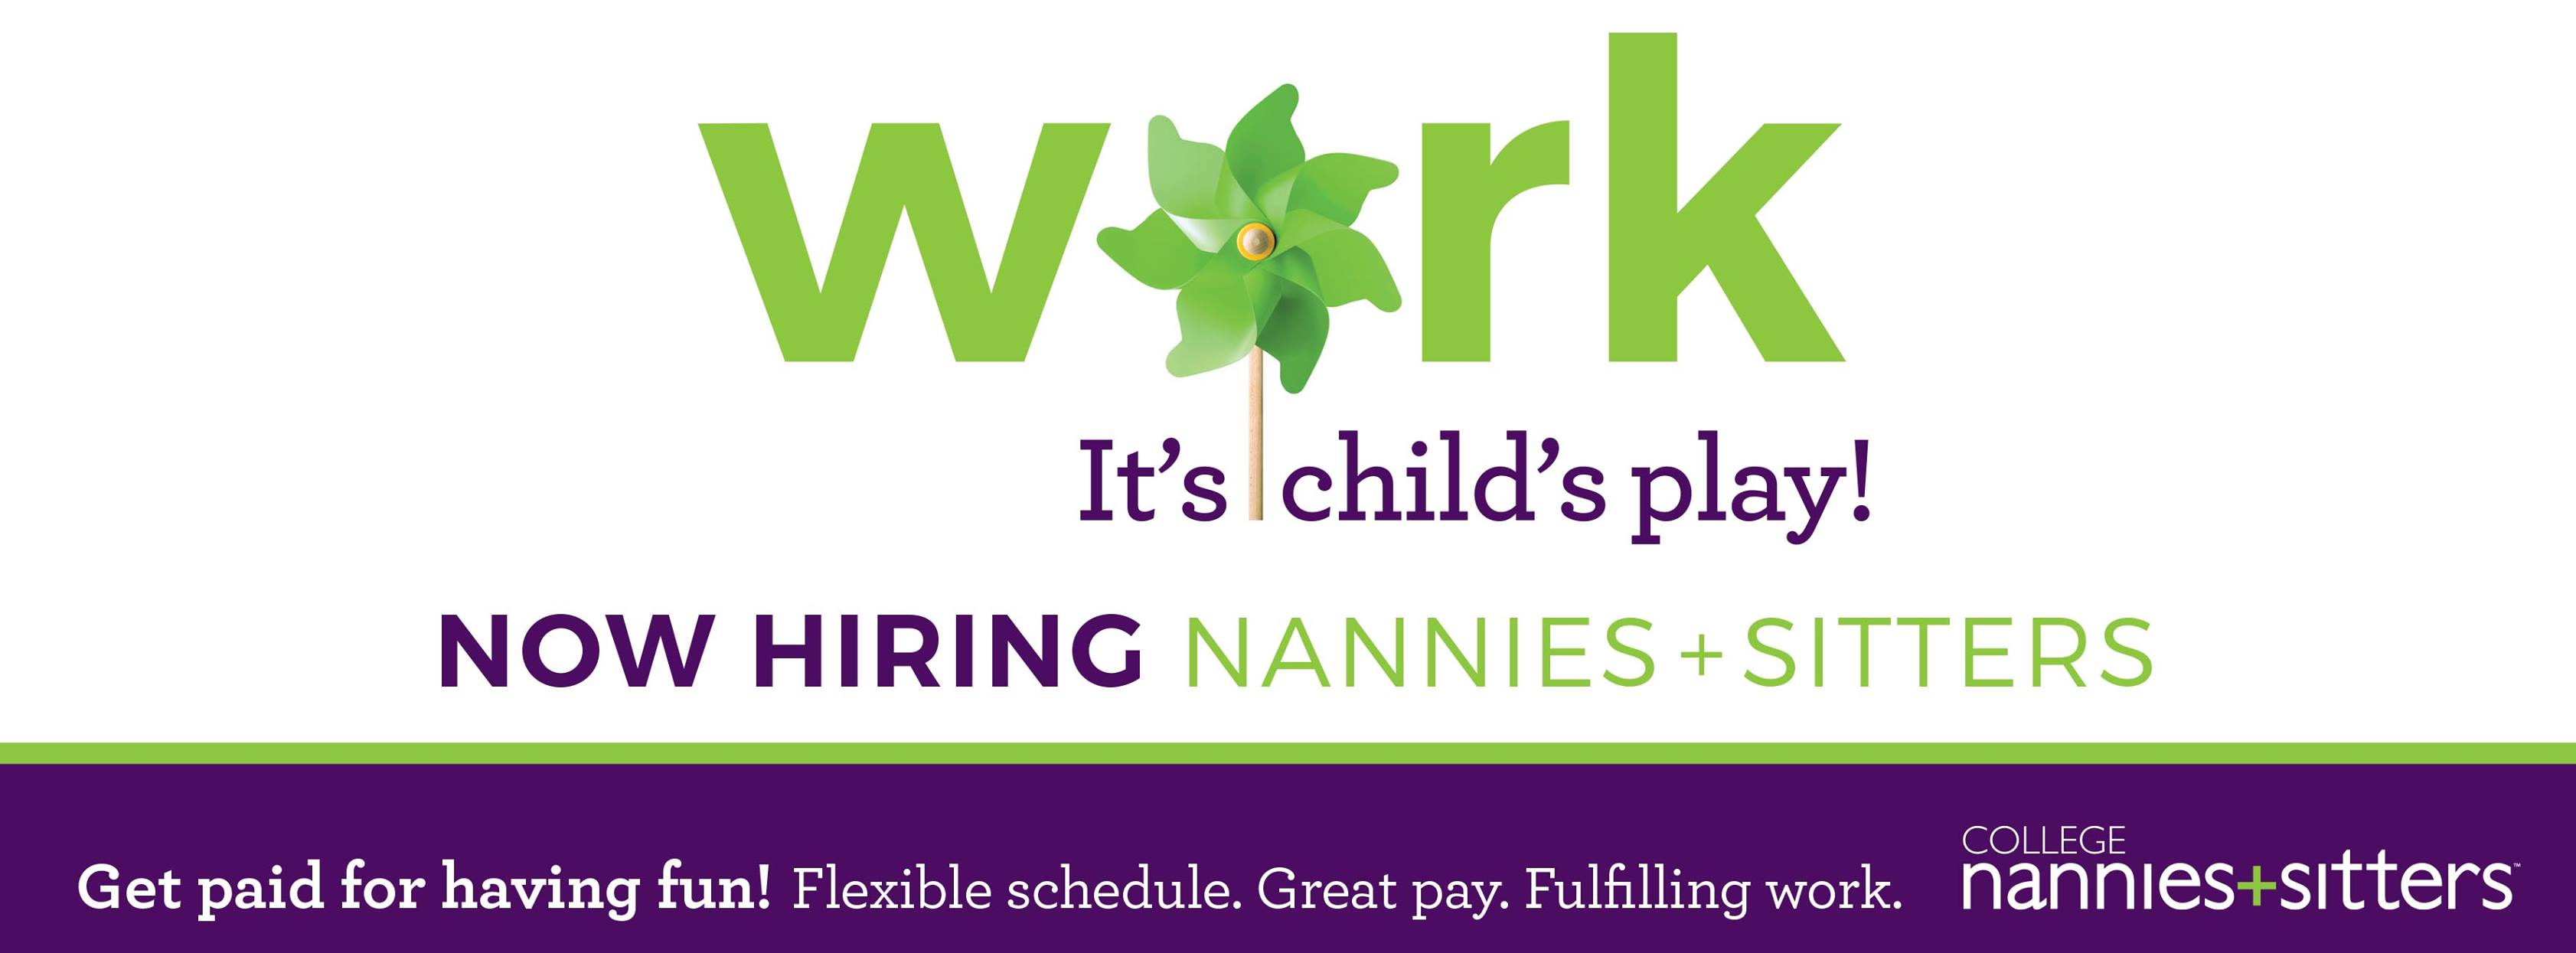 Sitter and Nanny Jobs TriCities TN Childcare Emplpyment